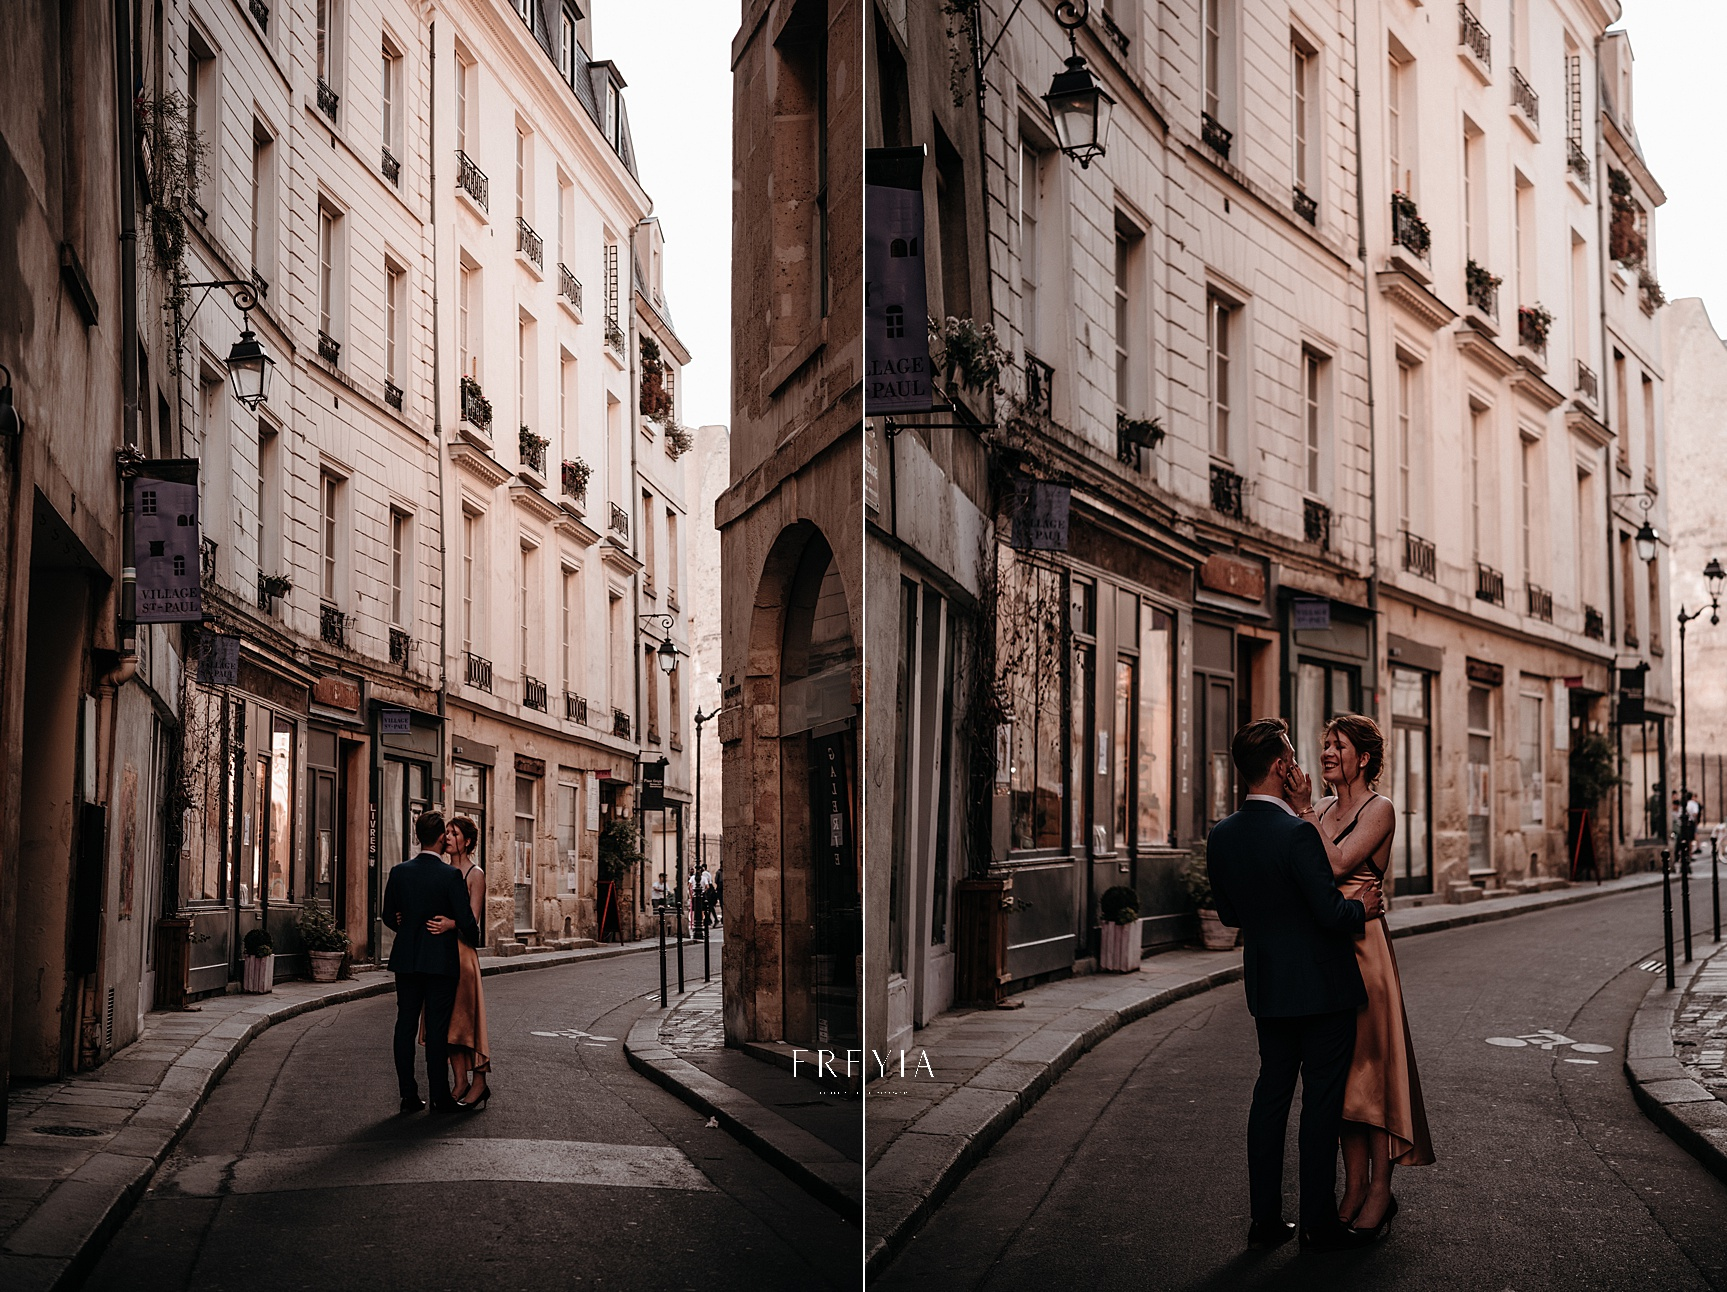 P + F |  mariage reportage alternatif moody intime vintage naturel boho boheme |  PHOTOGRAPHE mariage PARIS france destination  | FREYIA photography_-300.jpg